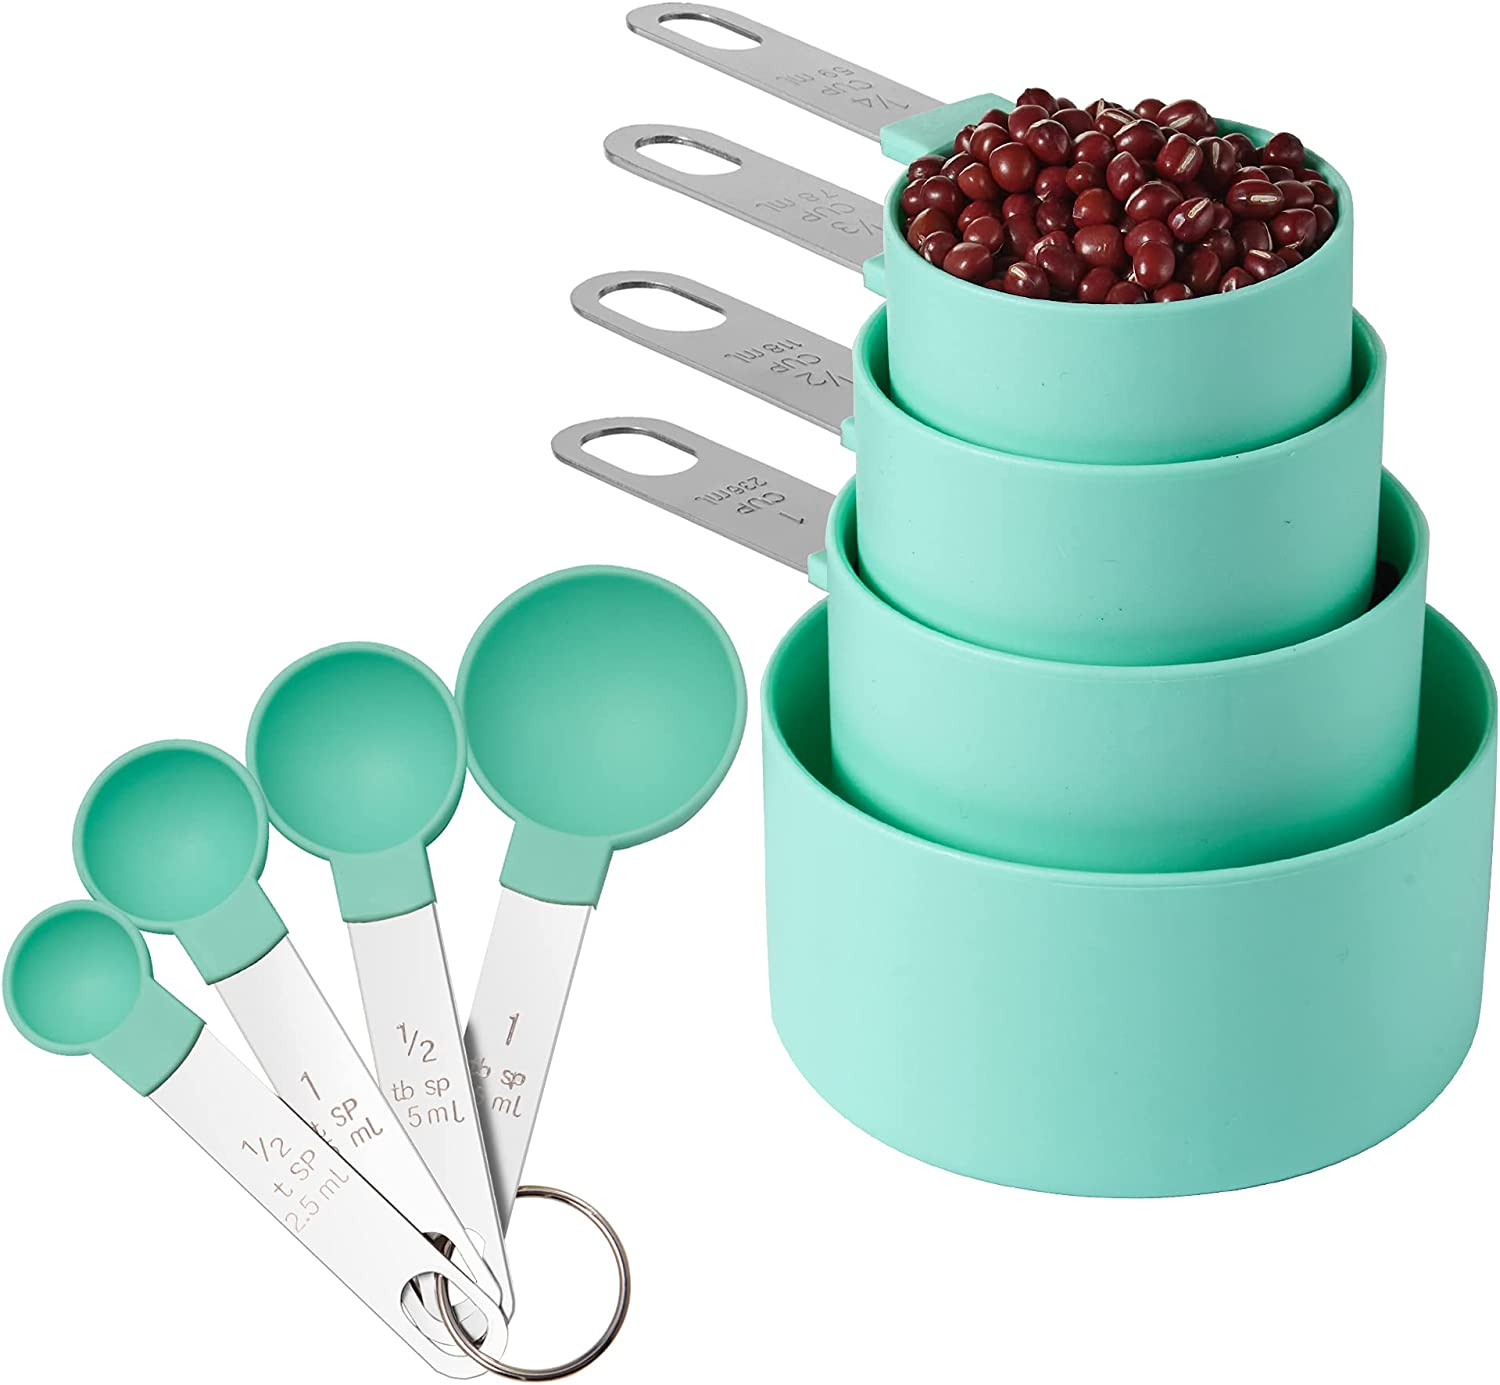 Measuring Cups and Spoons Set of Huygens Kitchen Gadgets 8 Pieces, Stackable Stainless Steel Handle Measure Cups for Measuring Dry and Liquid Ingredient (Blue-green)